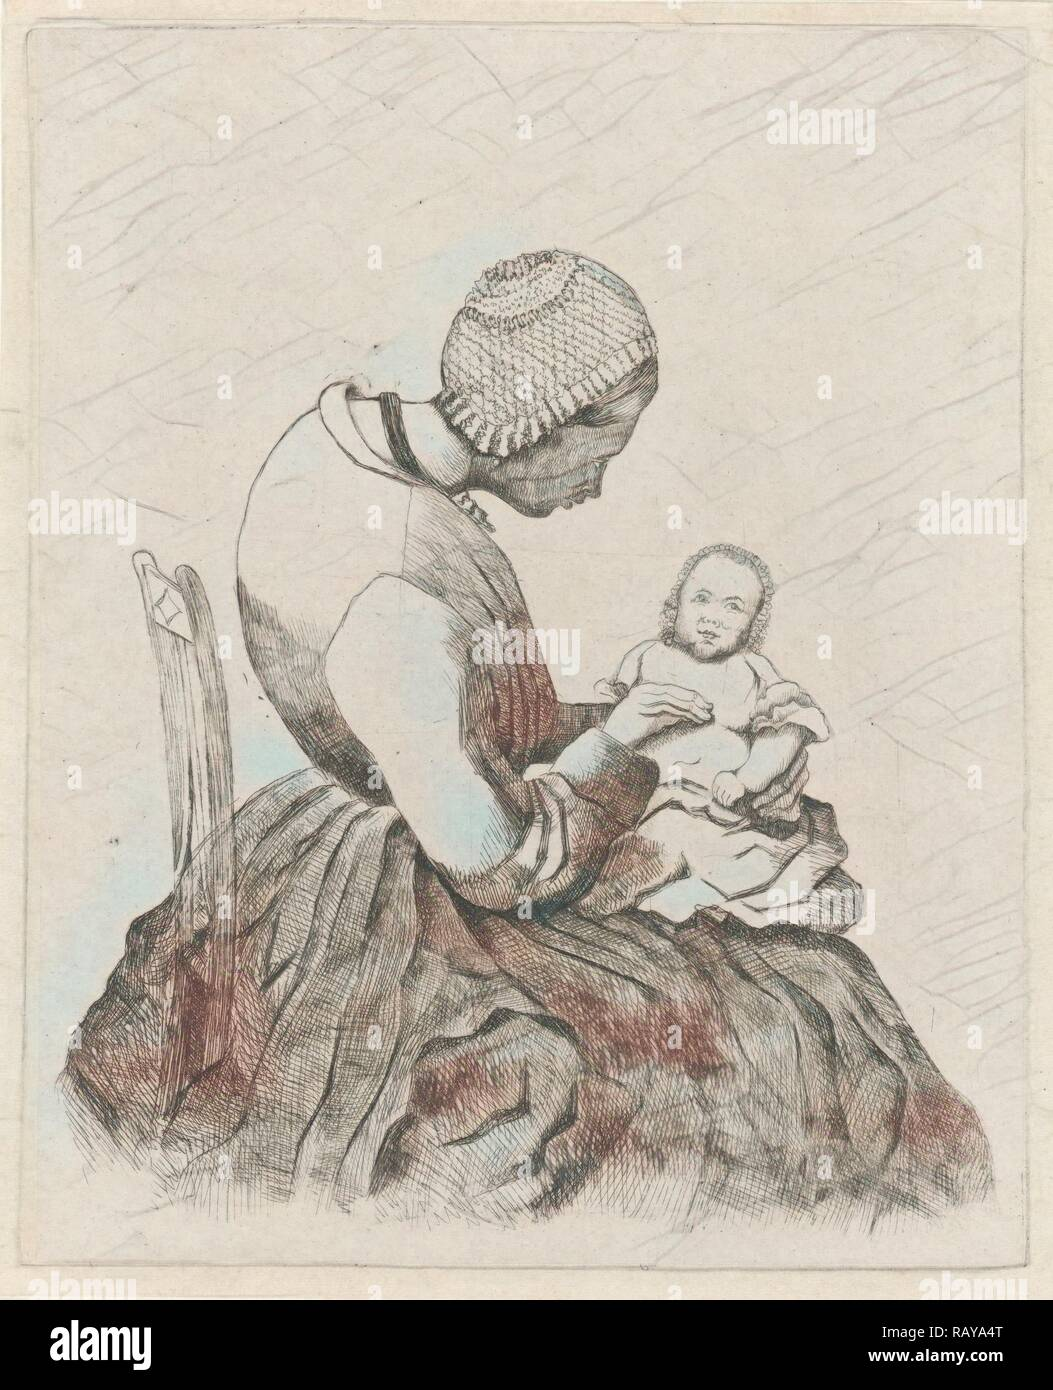 Mother with child, Eberhard Cornelis Rahms, 1859. Reimagined by Gibon. Classic art with a modern twist reimagined - Stock Image